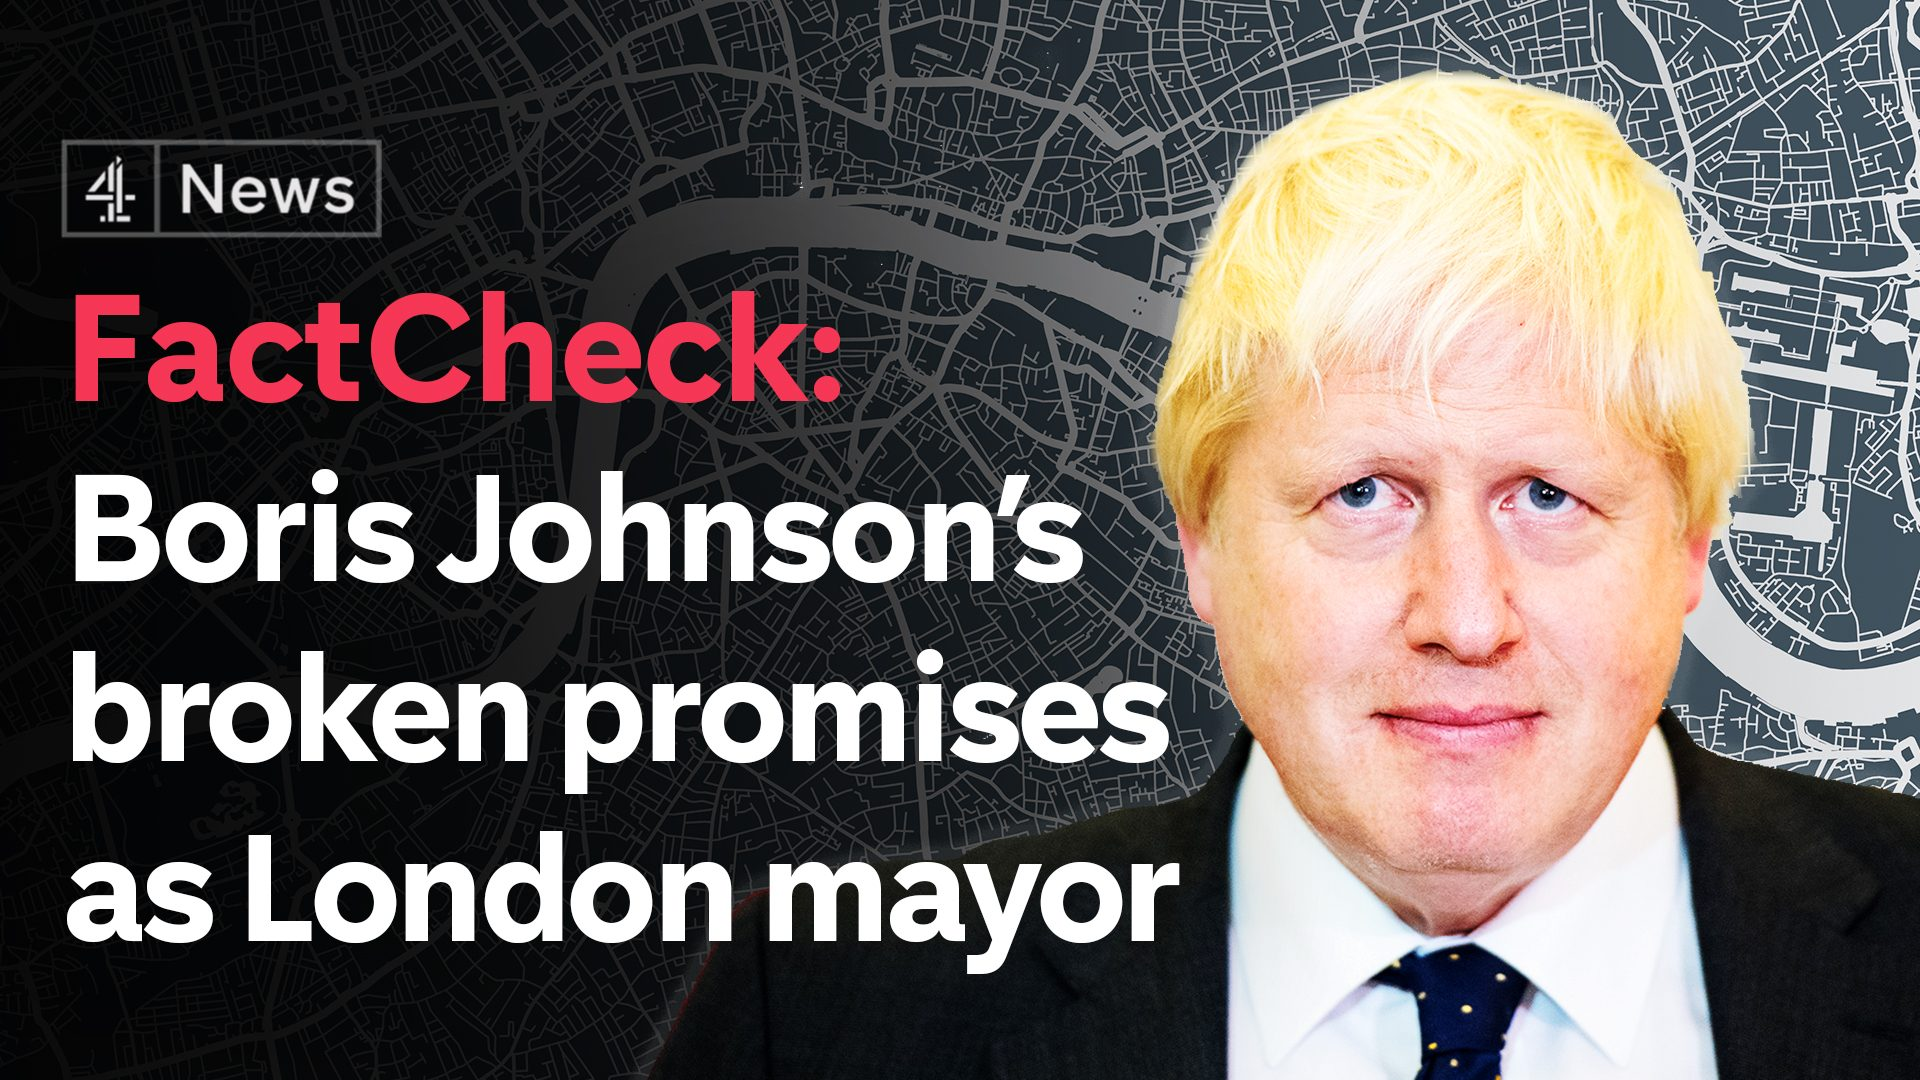 FactCheck: Boris Johnson's broken promises as London mayor ...